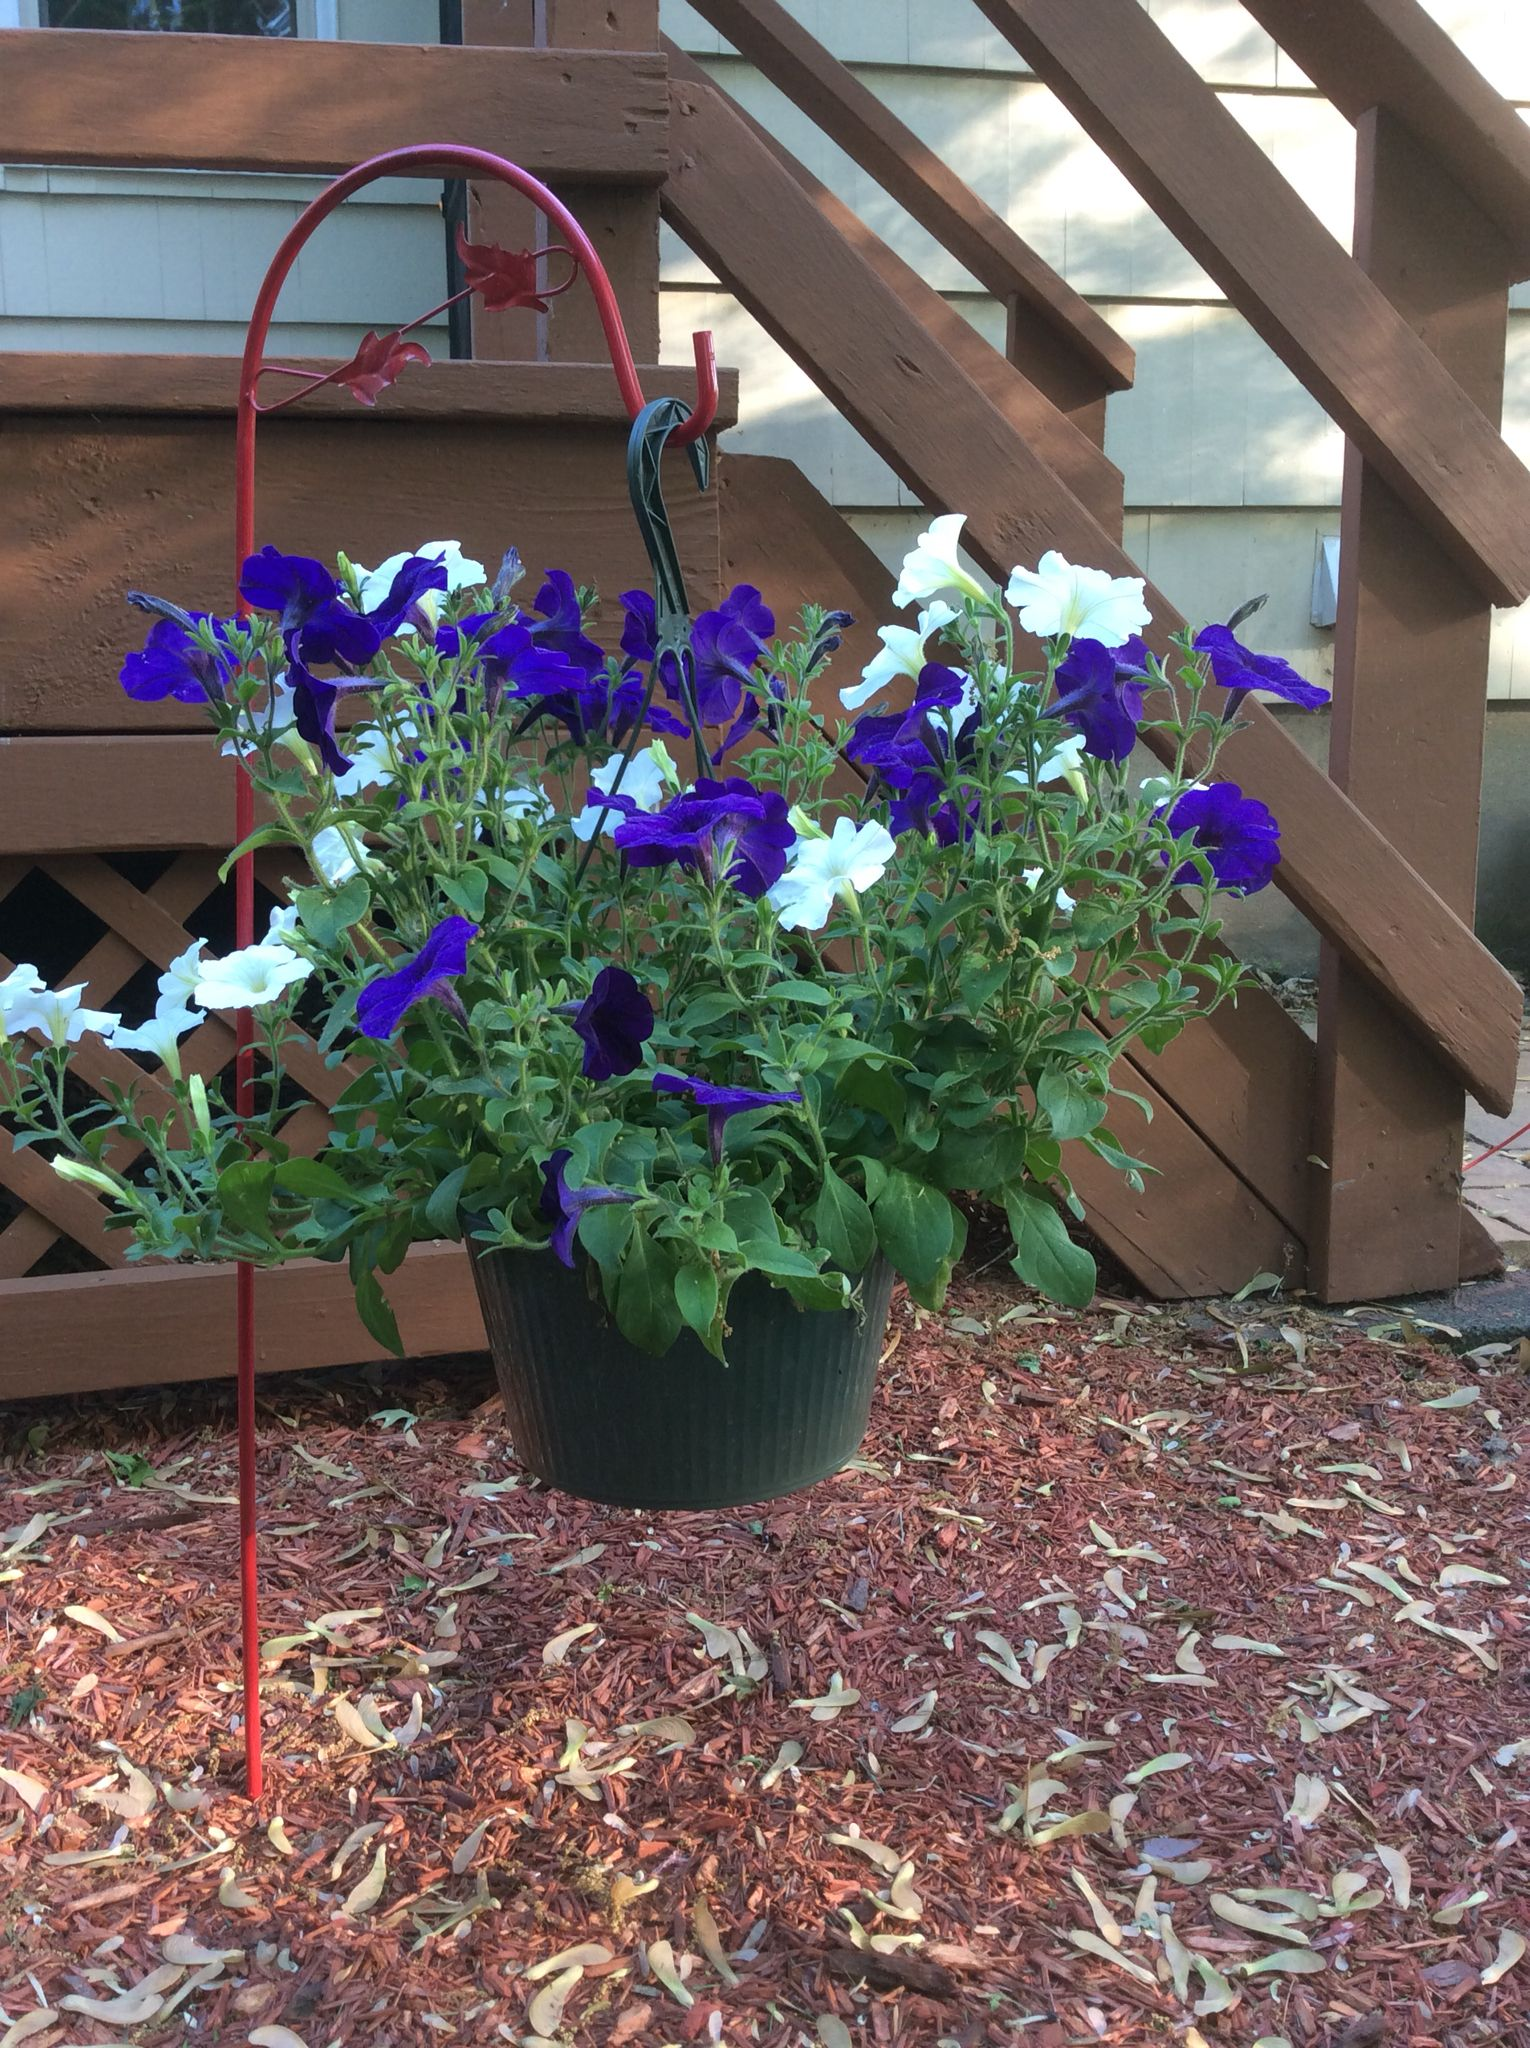 Low hanging plant in flower bed hanging plants plants